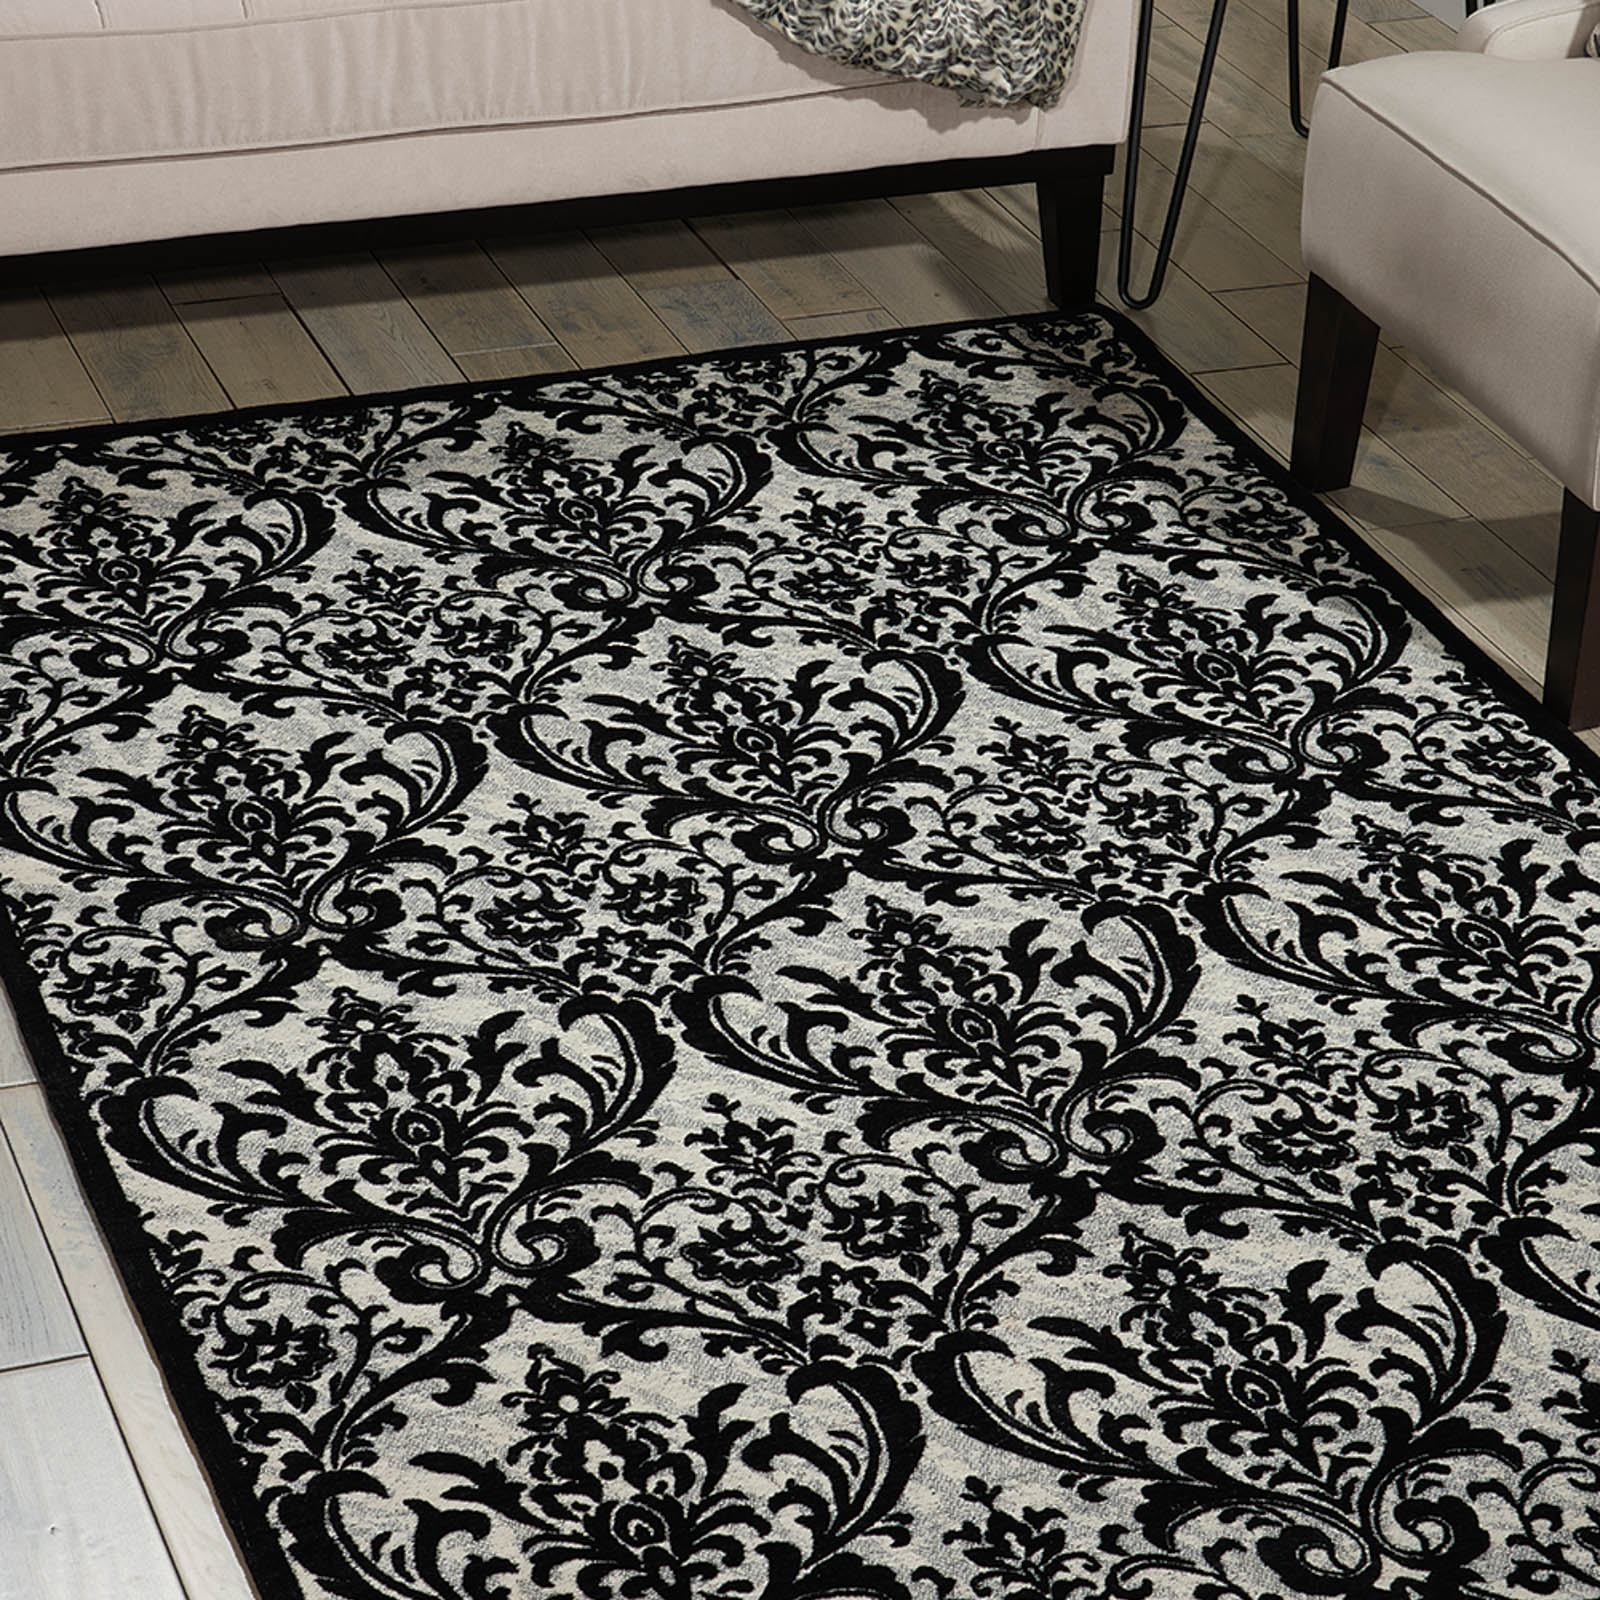 Damask Rugs DAS02 in Black and White by Nourison